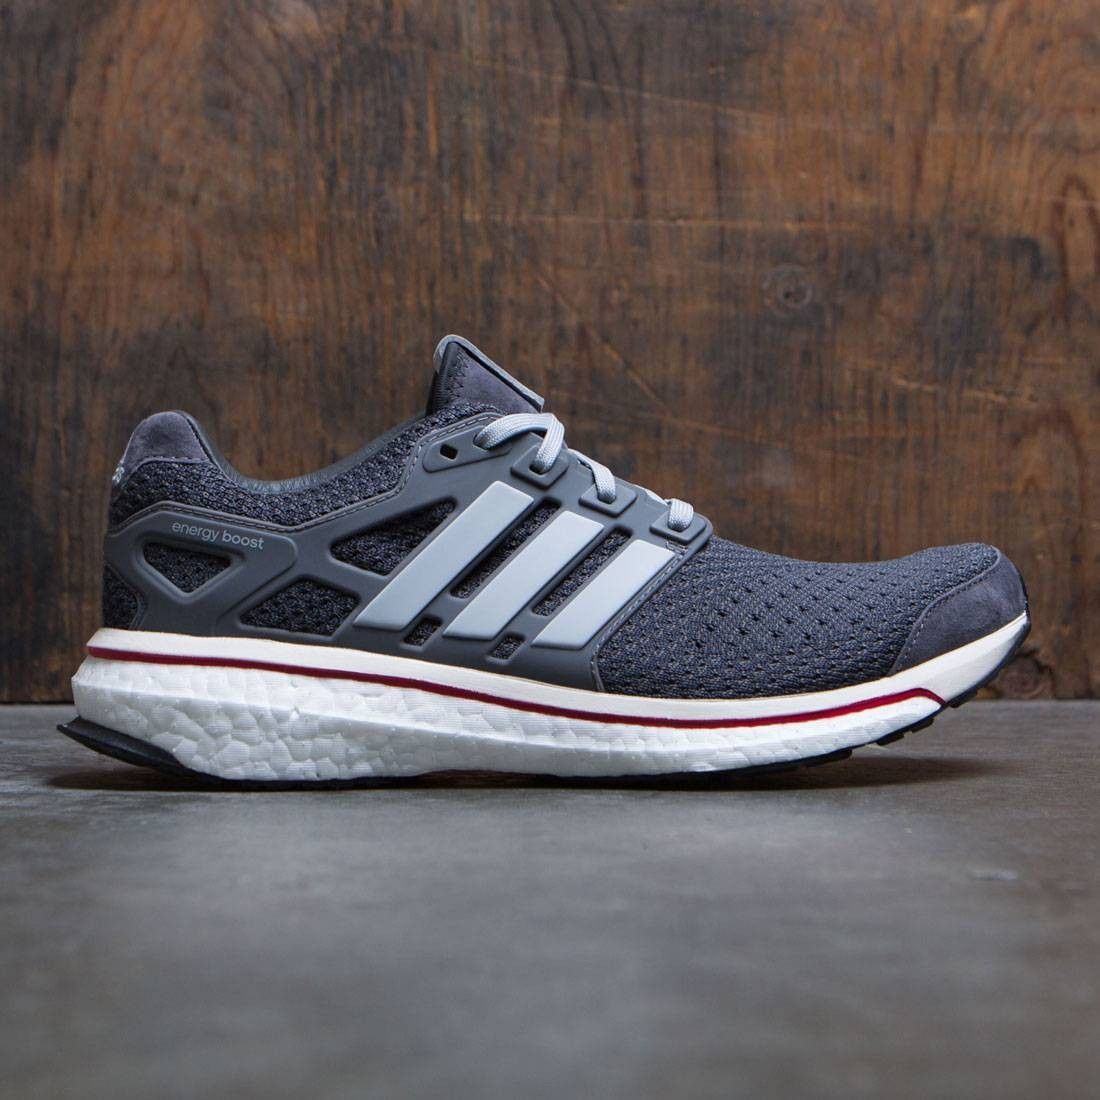 Adidas Mens Energy Boost Running Shoes